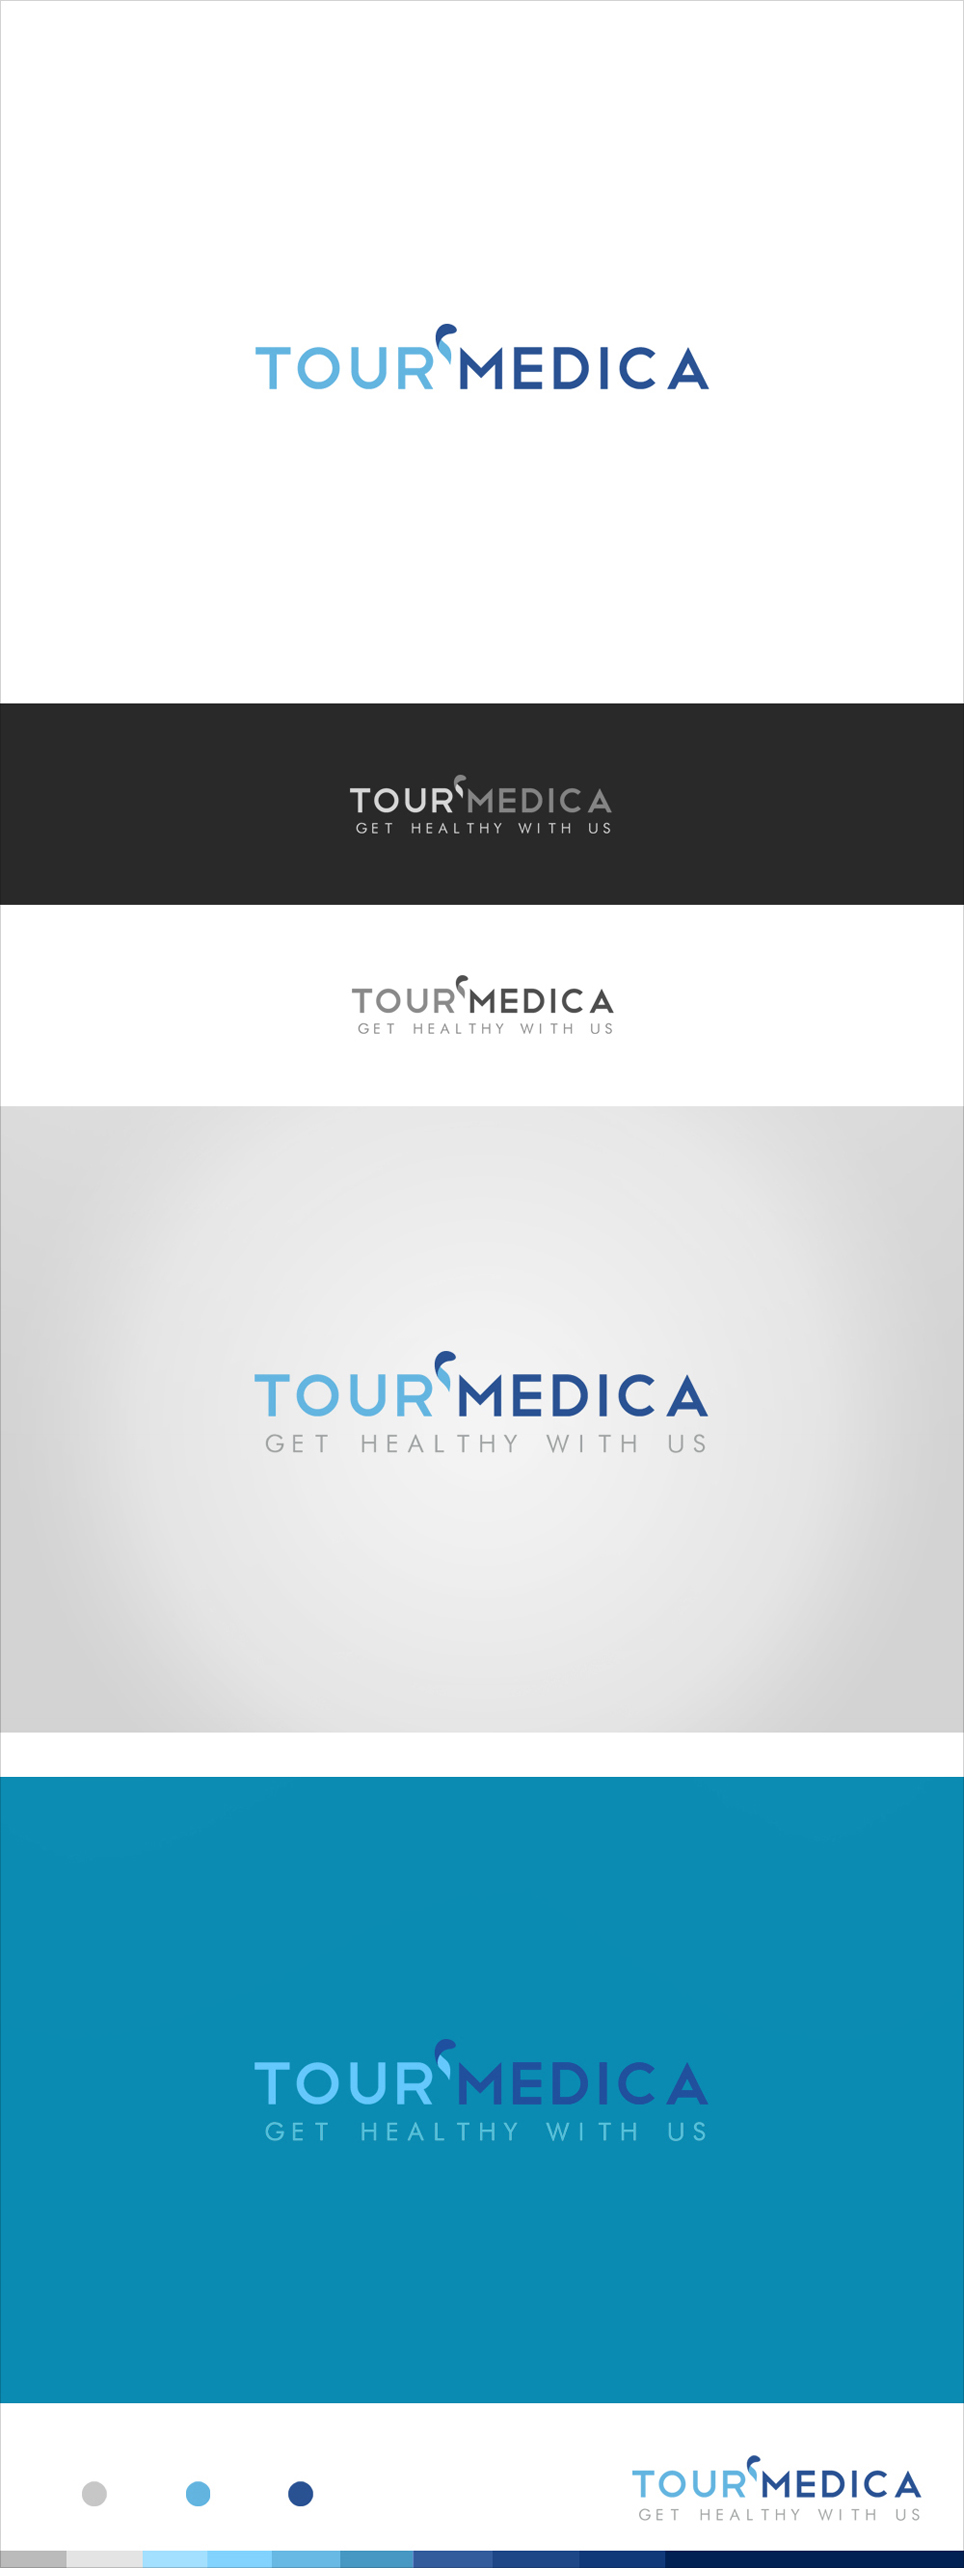 4 TOURMEDICA-2